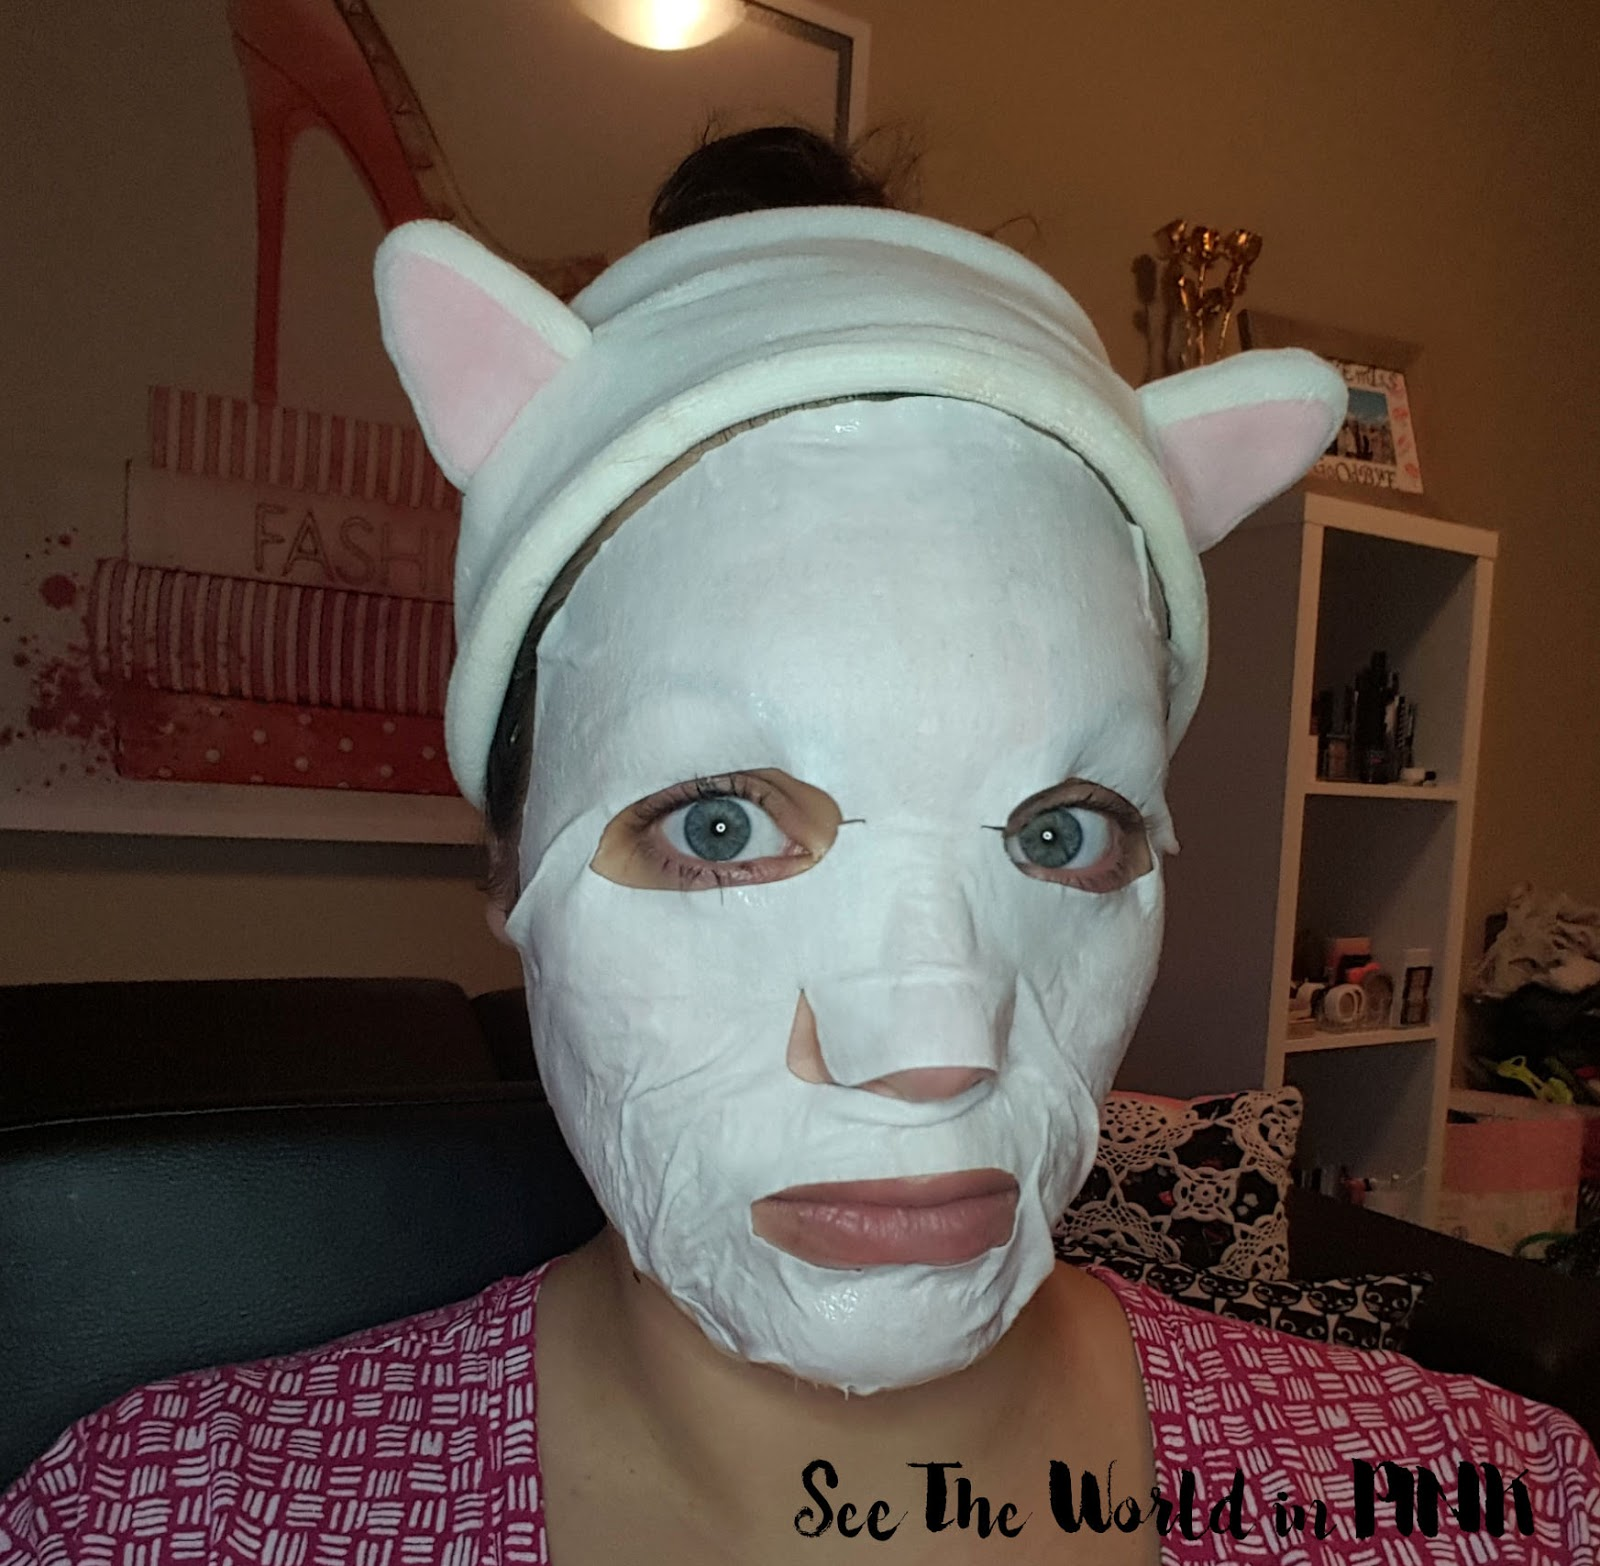 Mask Wednesday - THEFACESHOP Intense Firming Mascream Sheet